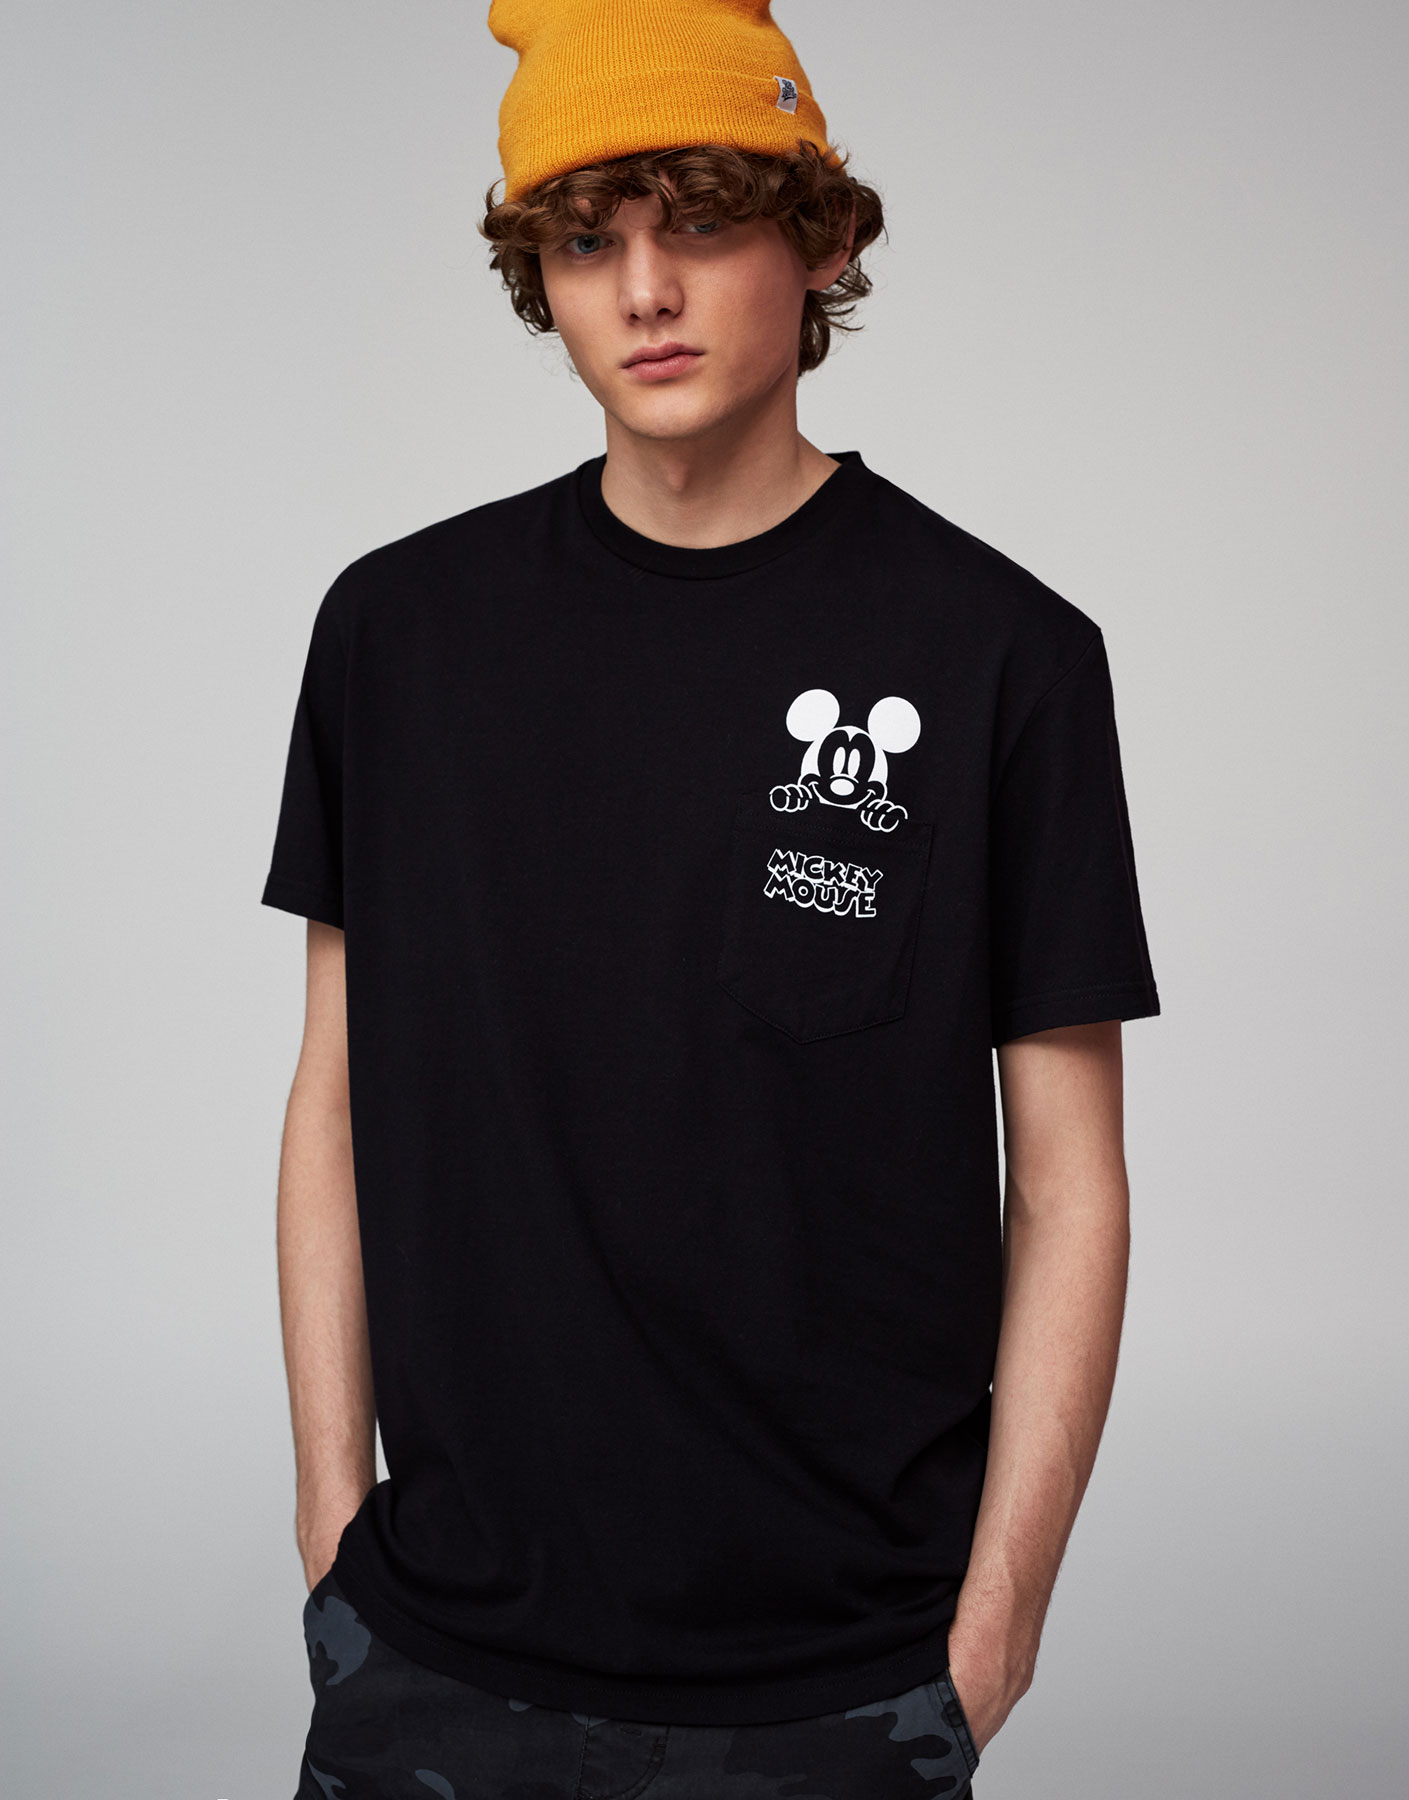 T-shirt with Mickey Mouse on pocket